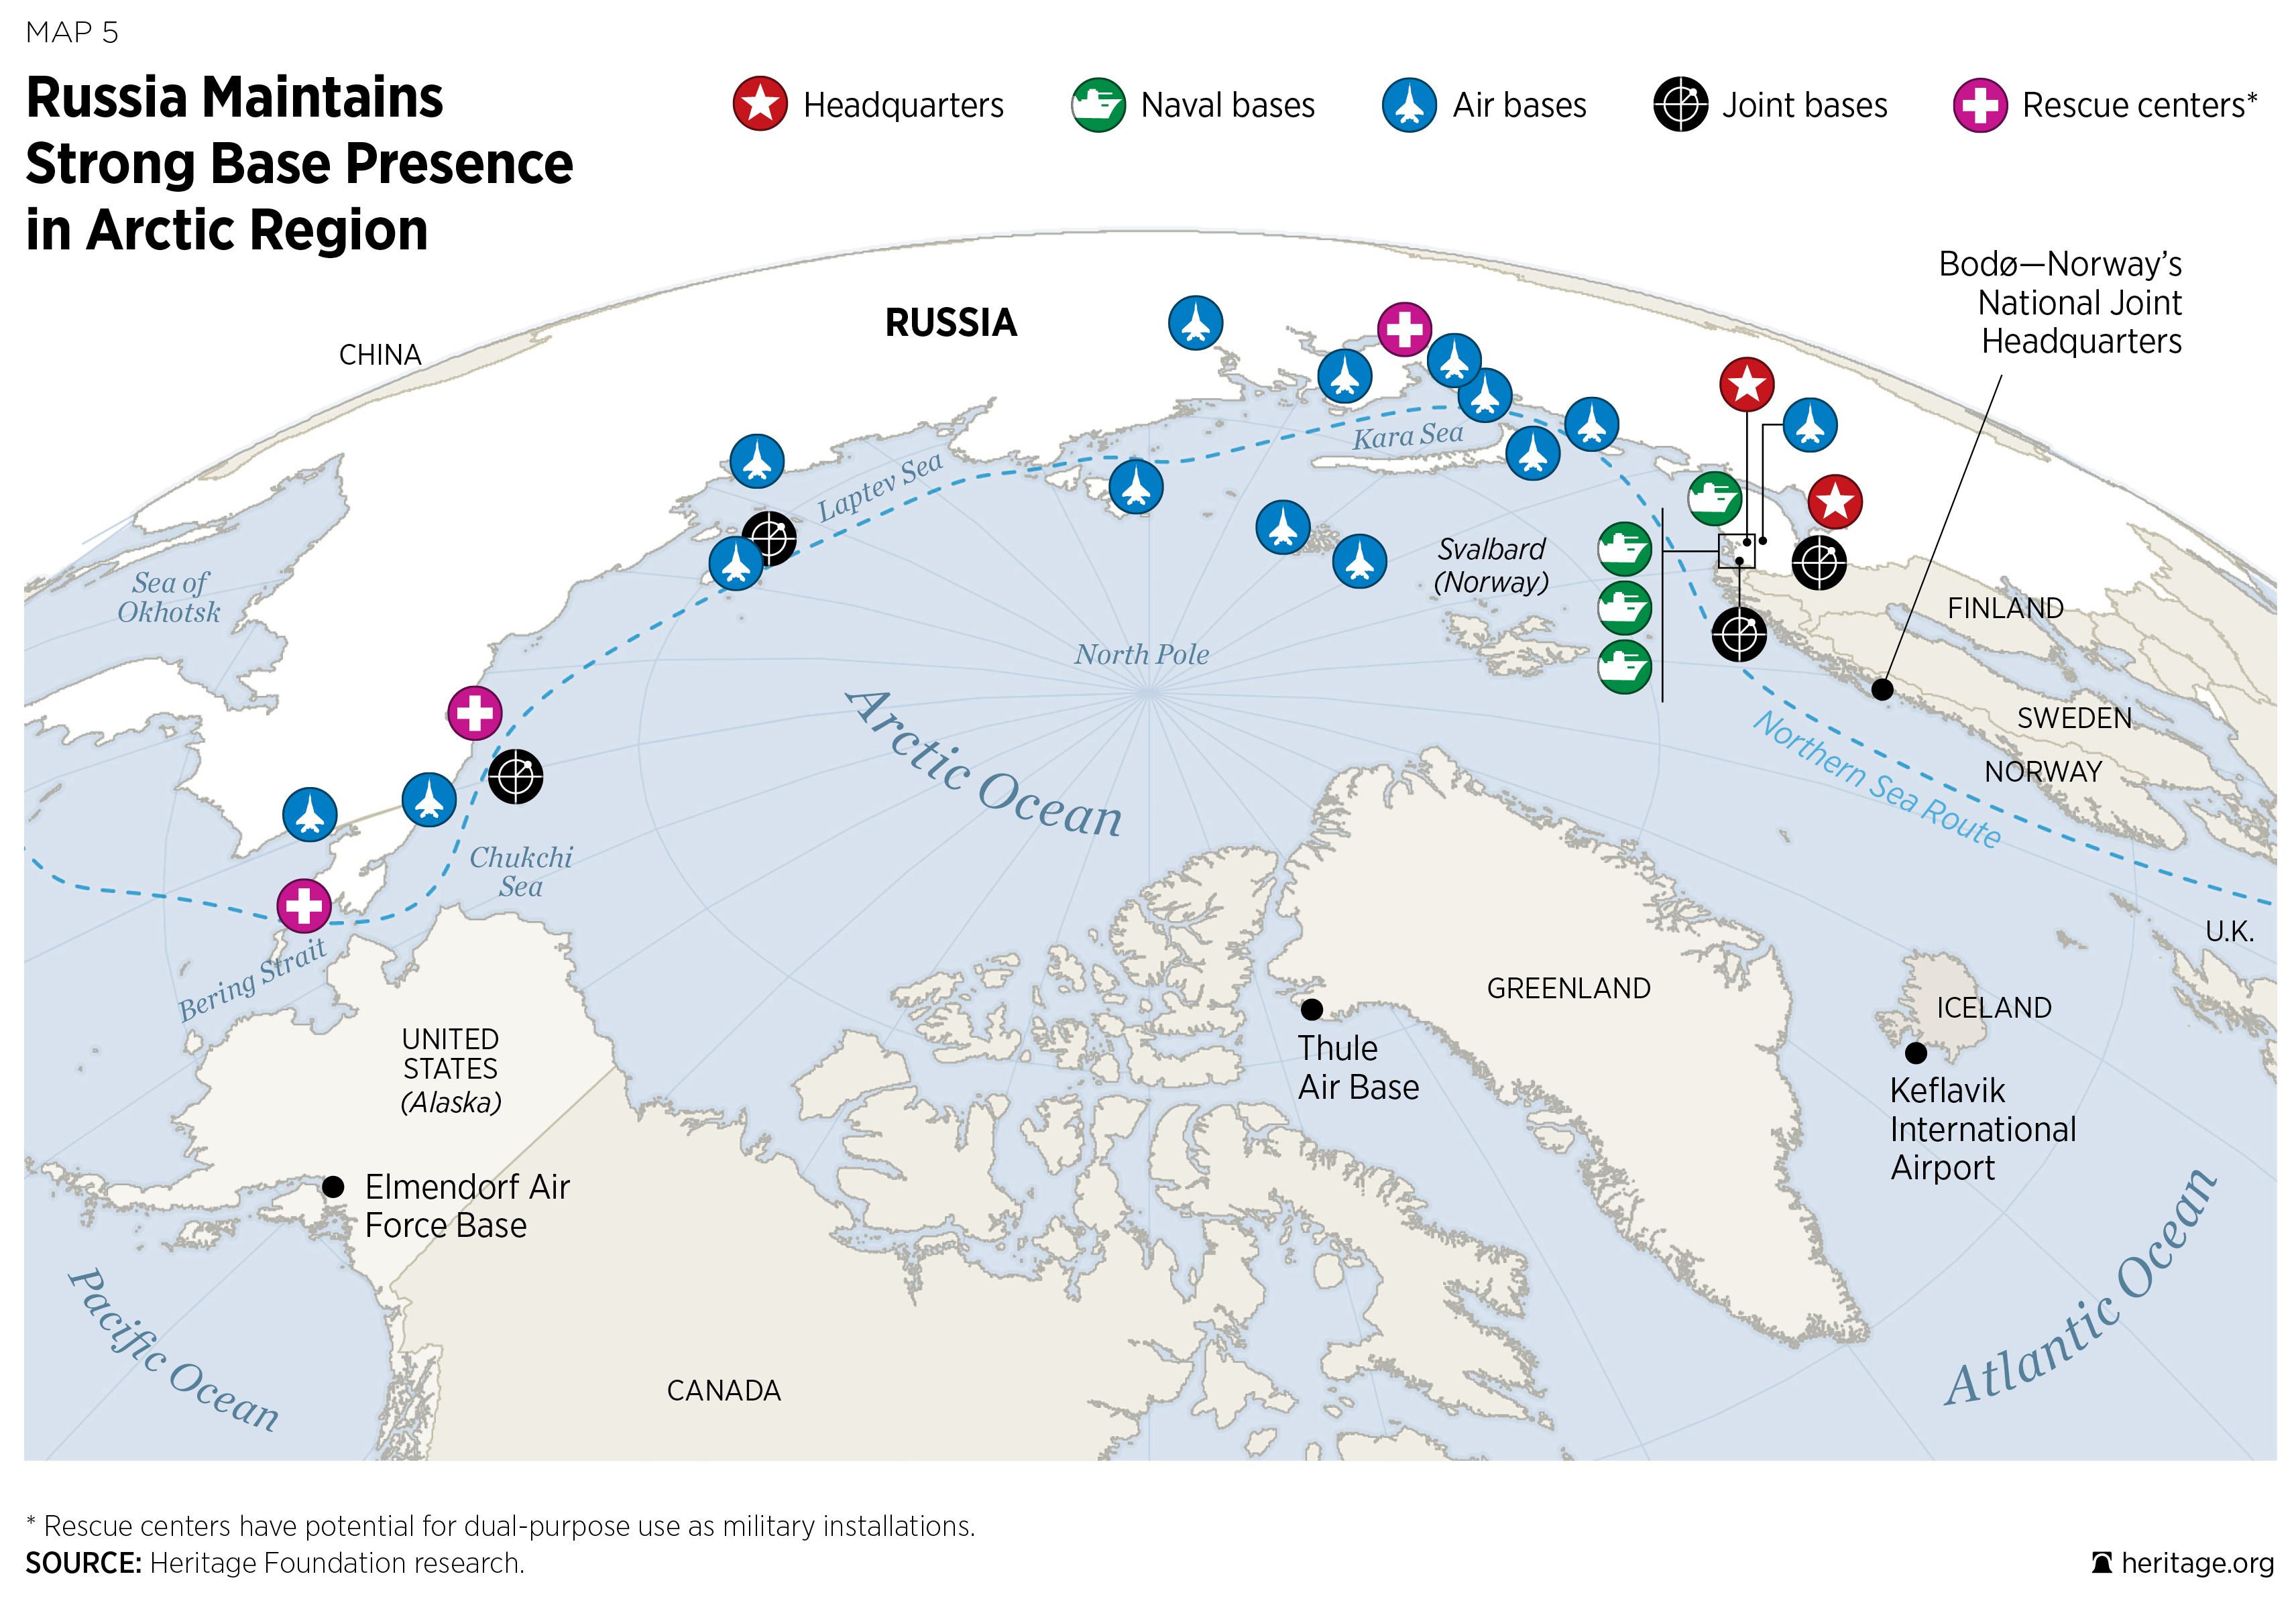 Map of Russia's Arctic Bases